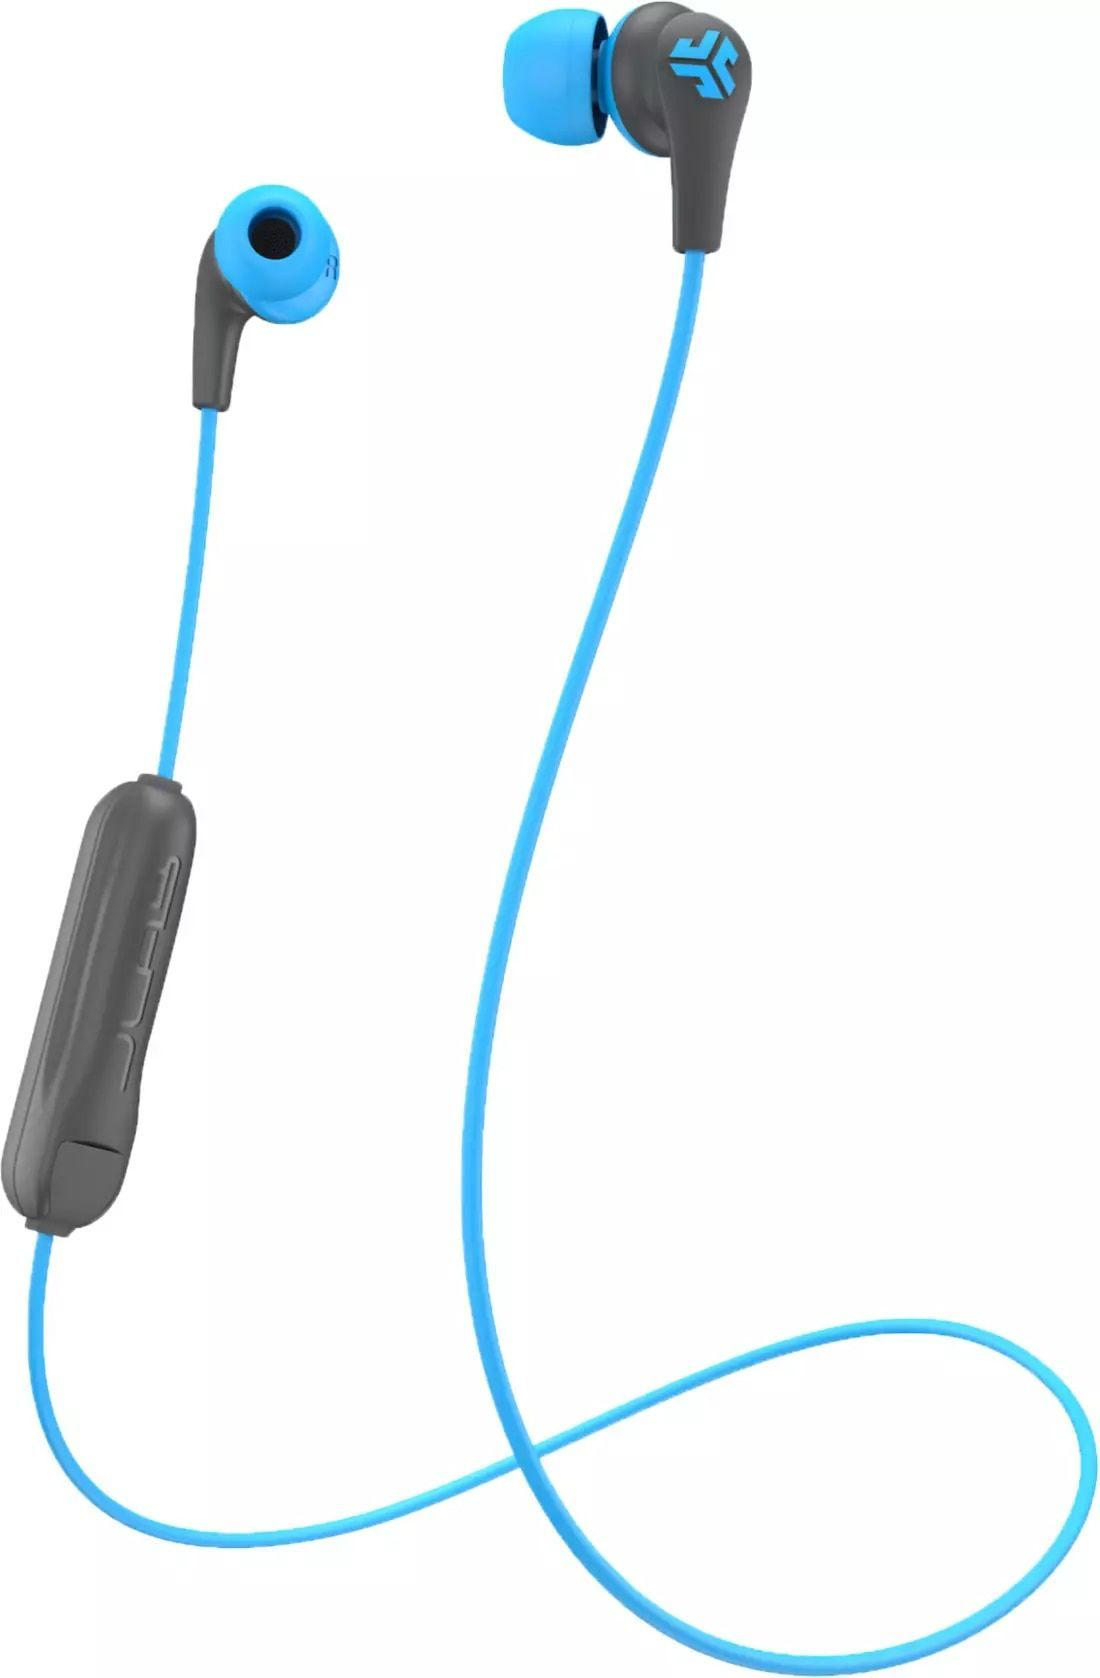 Kick It Wirelessly With The Jlab Jbuds Pro Bluetooth Signature Earbuds Designed With Adjustable Tip Placement Atp Wireless Earbuds Earbuds Earbud Headphones